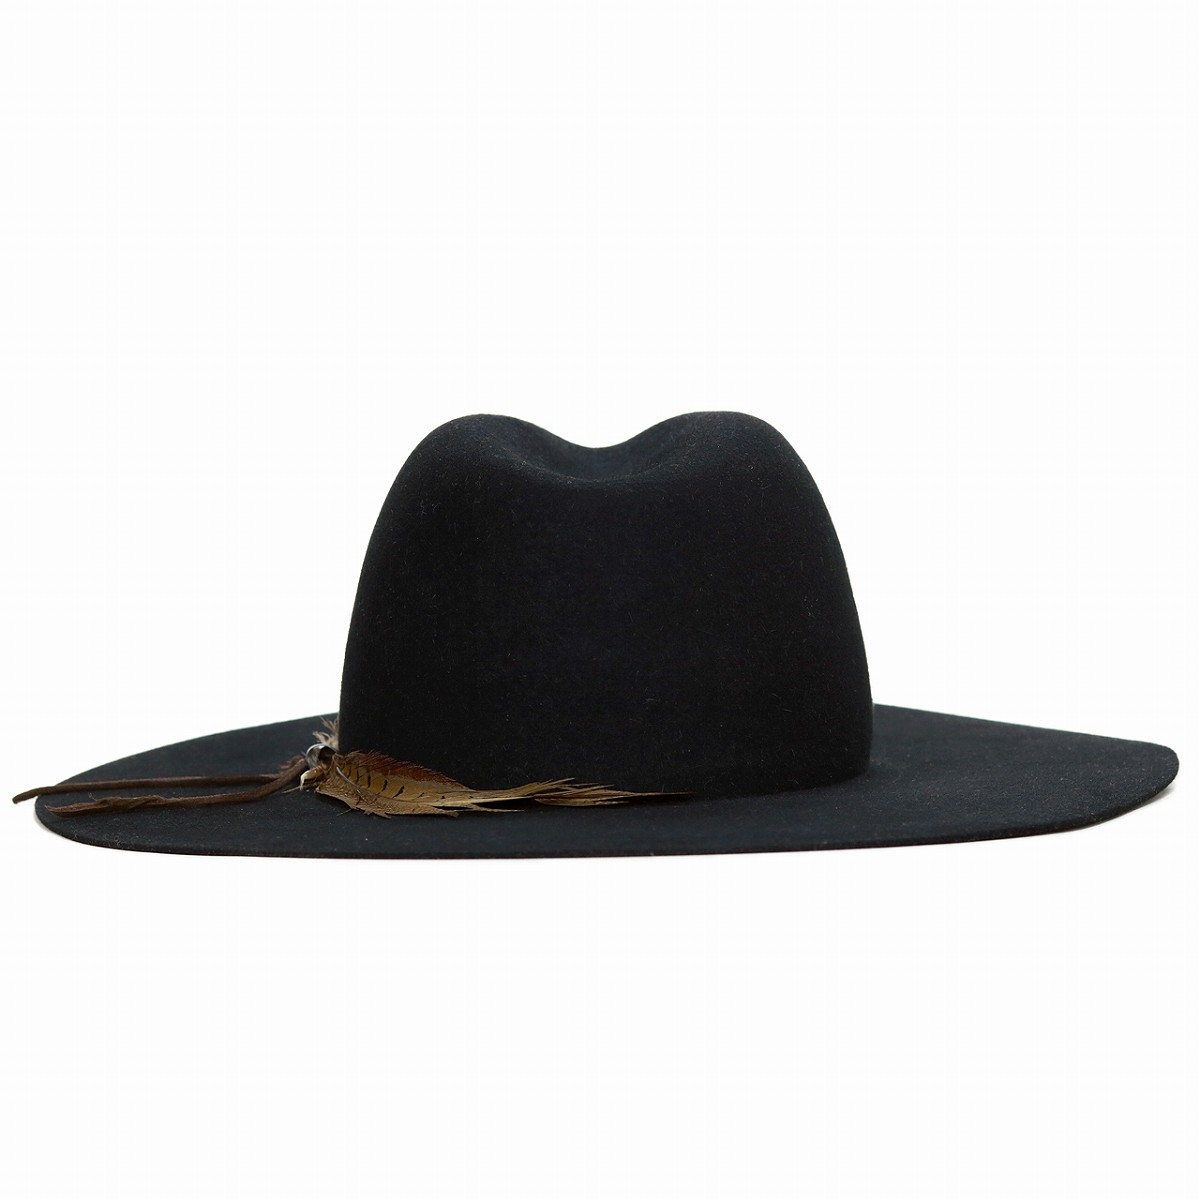 372d0c494a9 Trilby hat gentleman 57cm 59cm black black  cowboy hat  sells stetson hat  by mail order  felt hat   wide-brim hat  in felt cowboy hat feather flat  visor ...